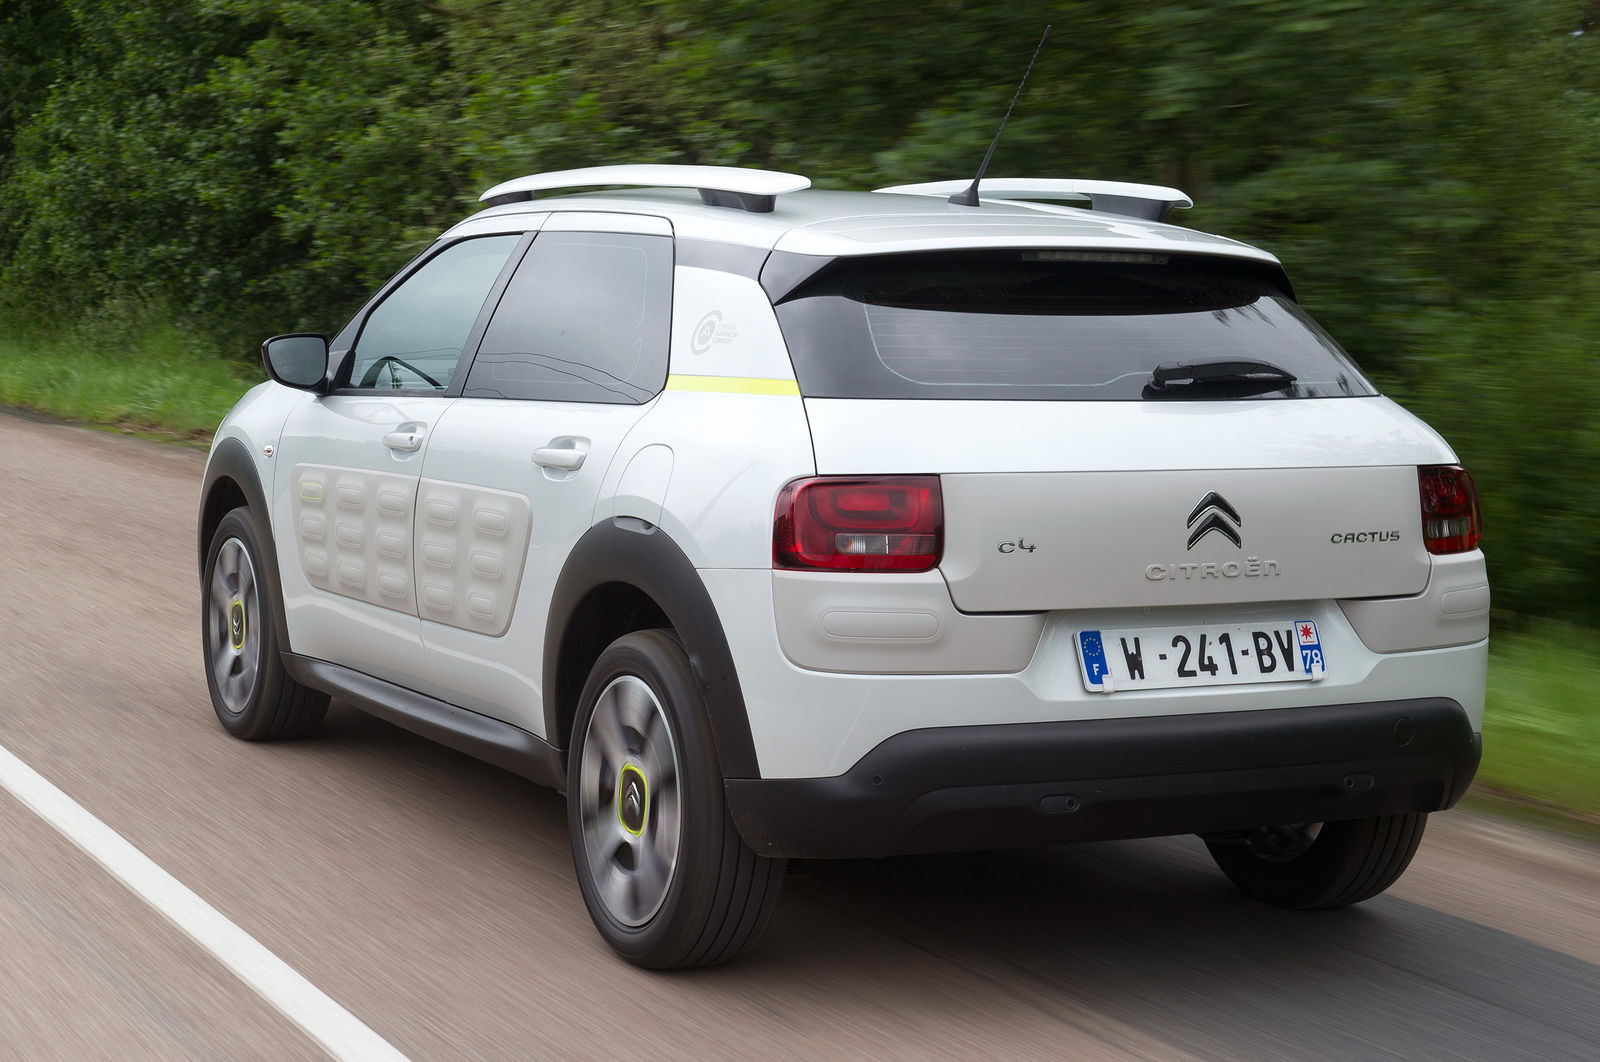 citroen cactus price images galleries with a bite. Black Bedroom Furniture Sets. Home Design Ideas